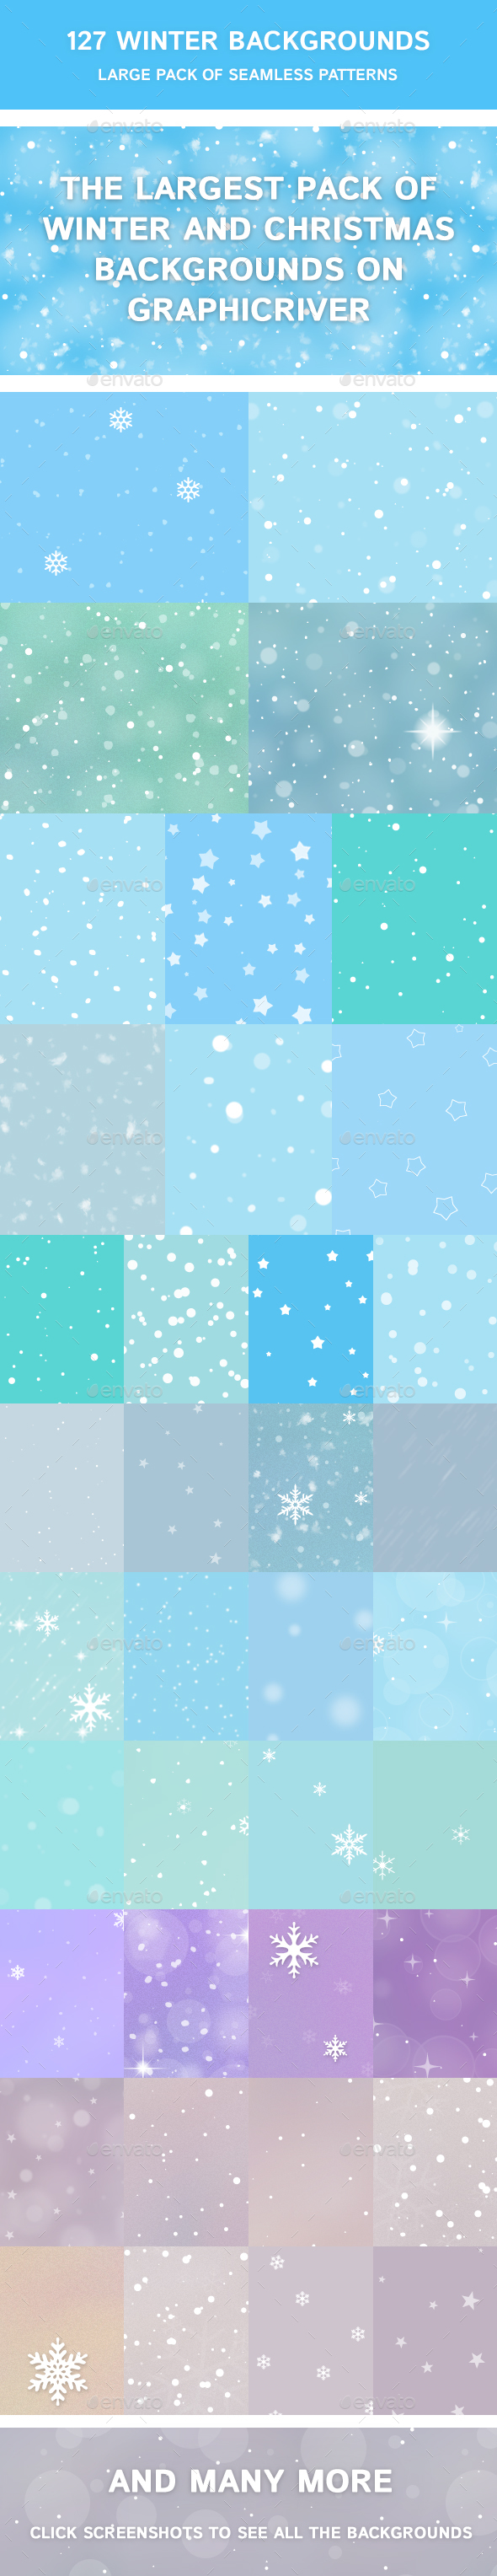 127 Winter Backgrounds - Large Pack of Seamless Patterns - Backgrounds Graphics